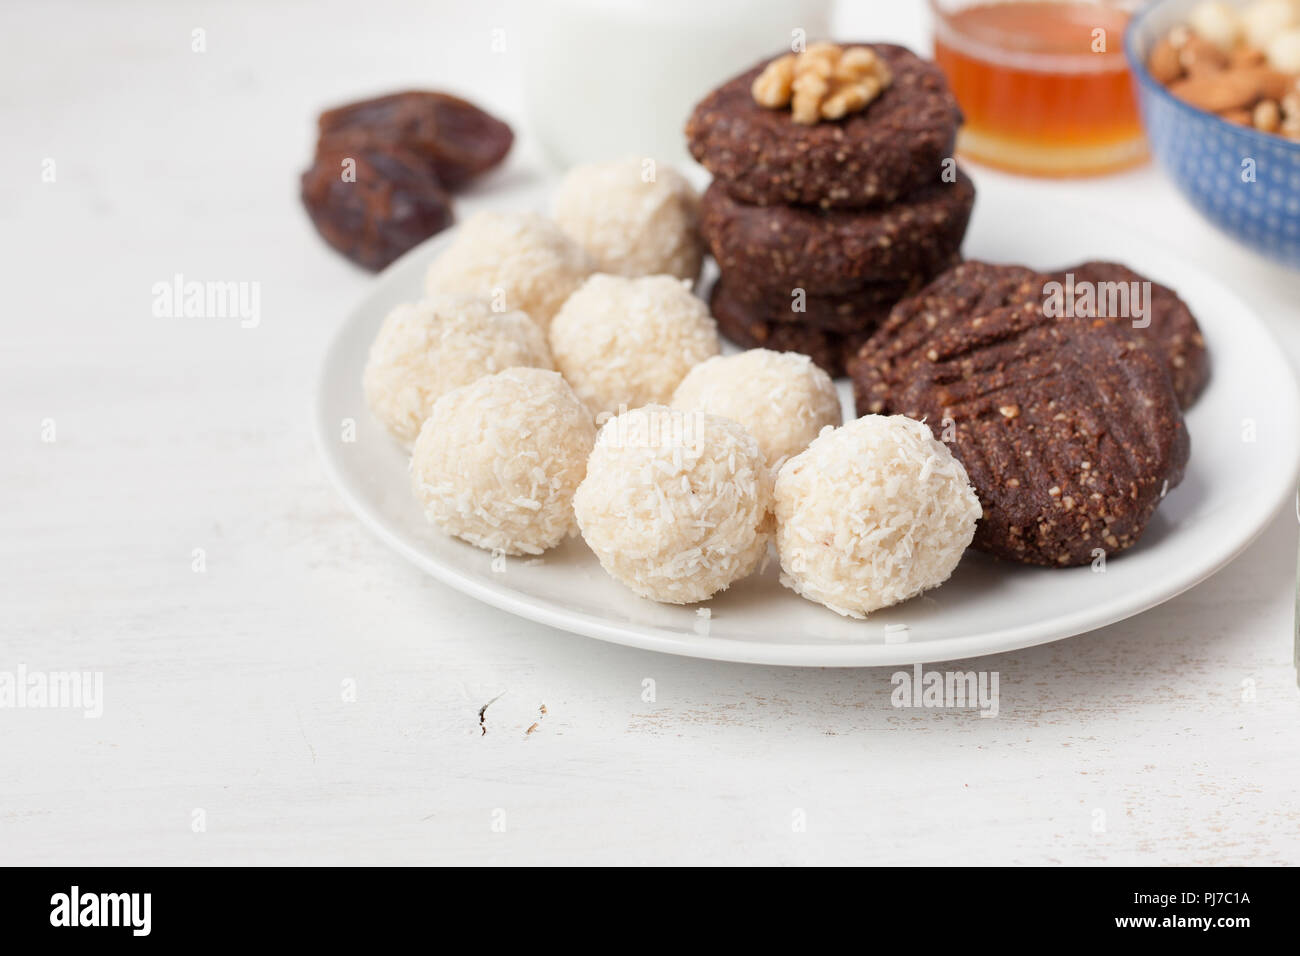 Raw Vegan Paleo Style Cookies Selection Made With Nuts